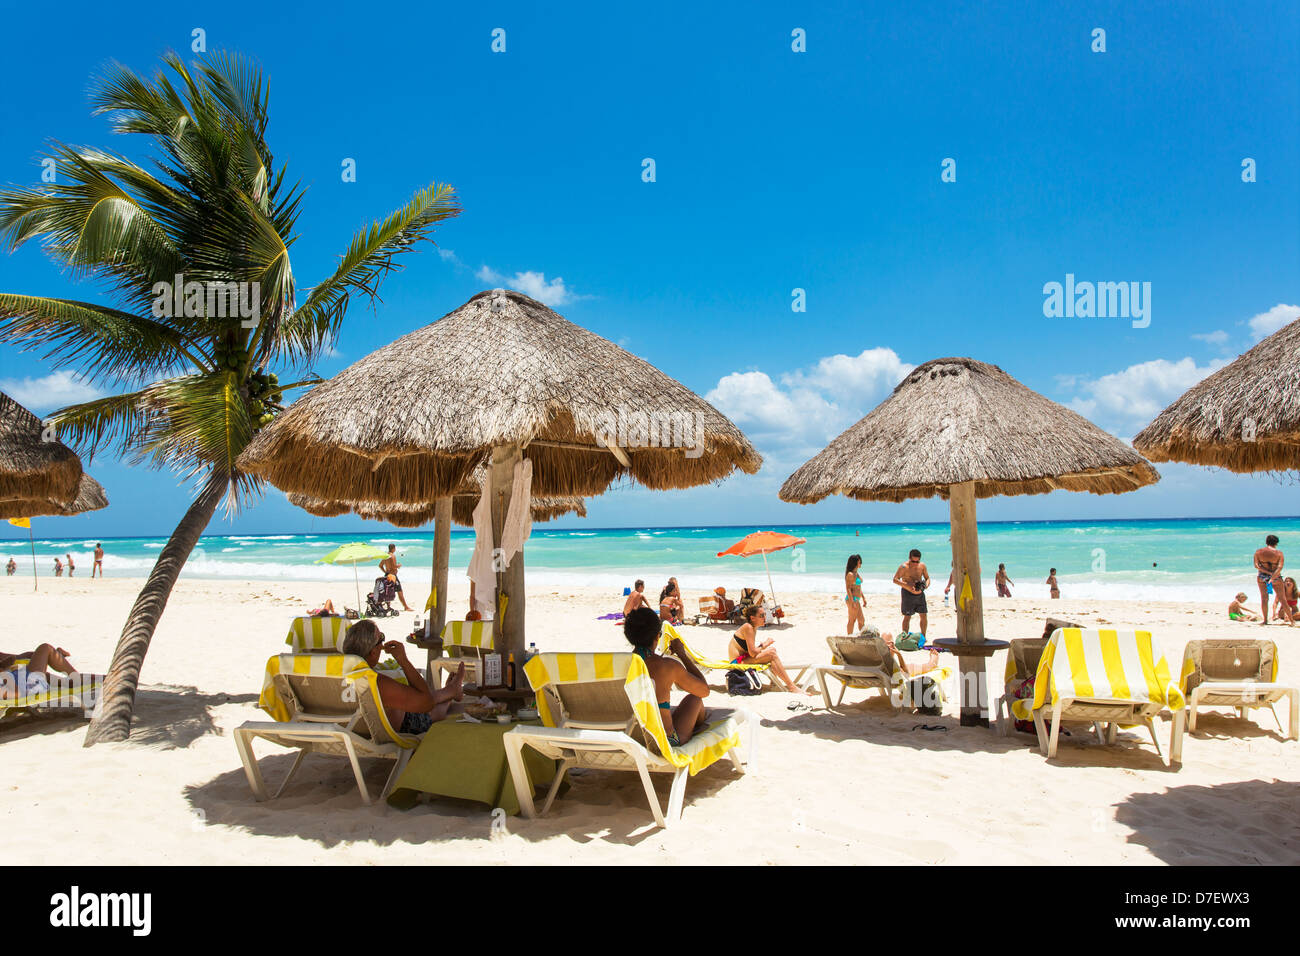 Mexico, Playa del Carmen people at a beach with palm trees and palapas - Stock Image